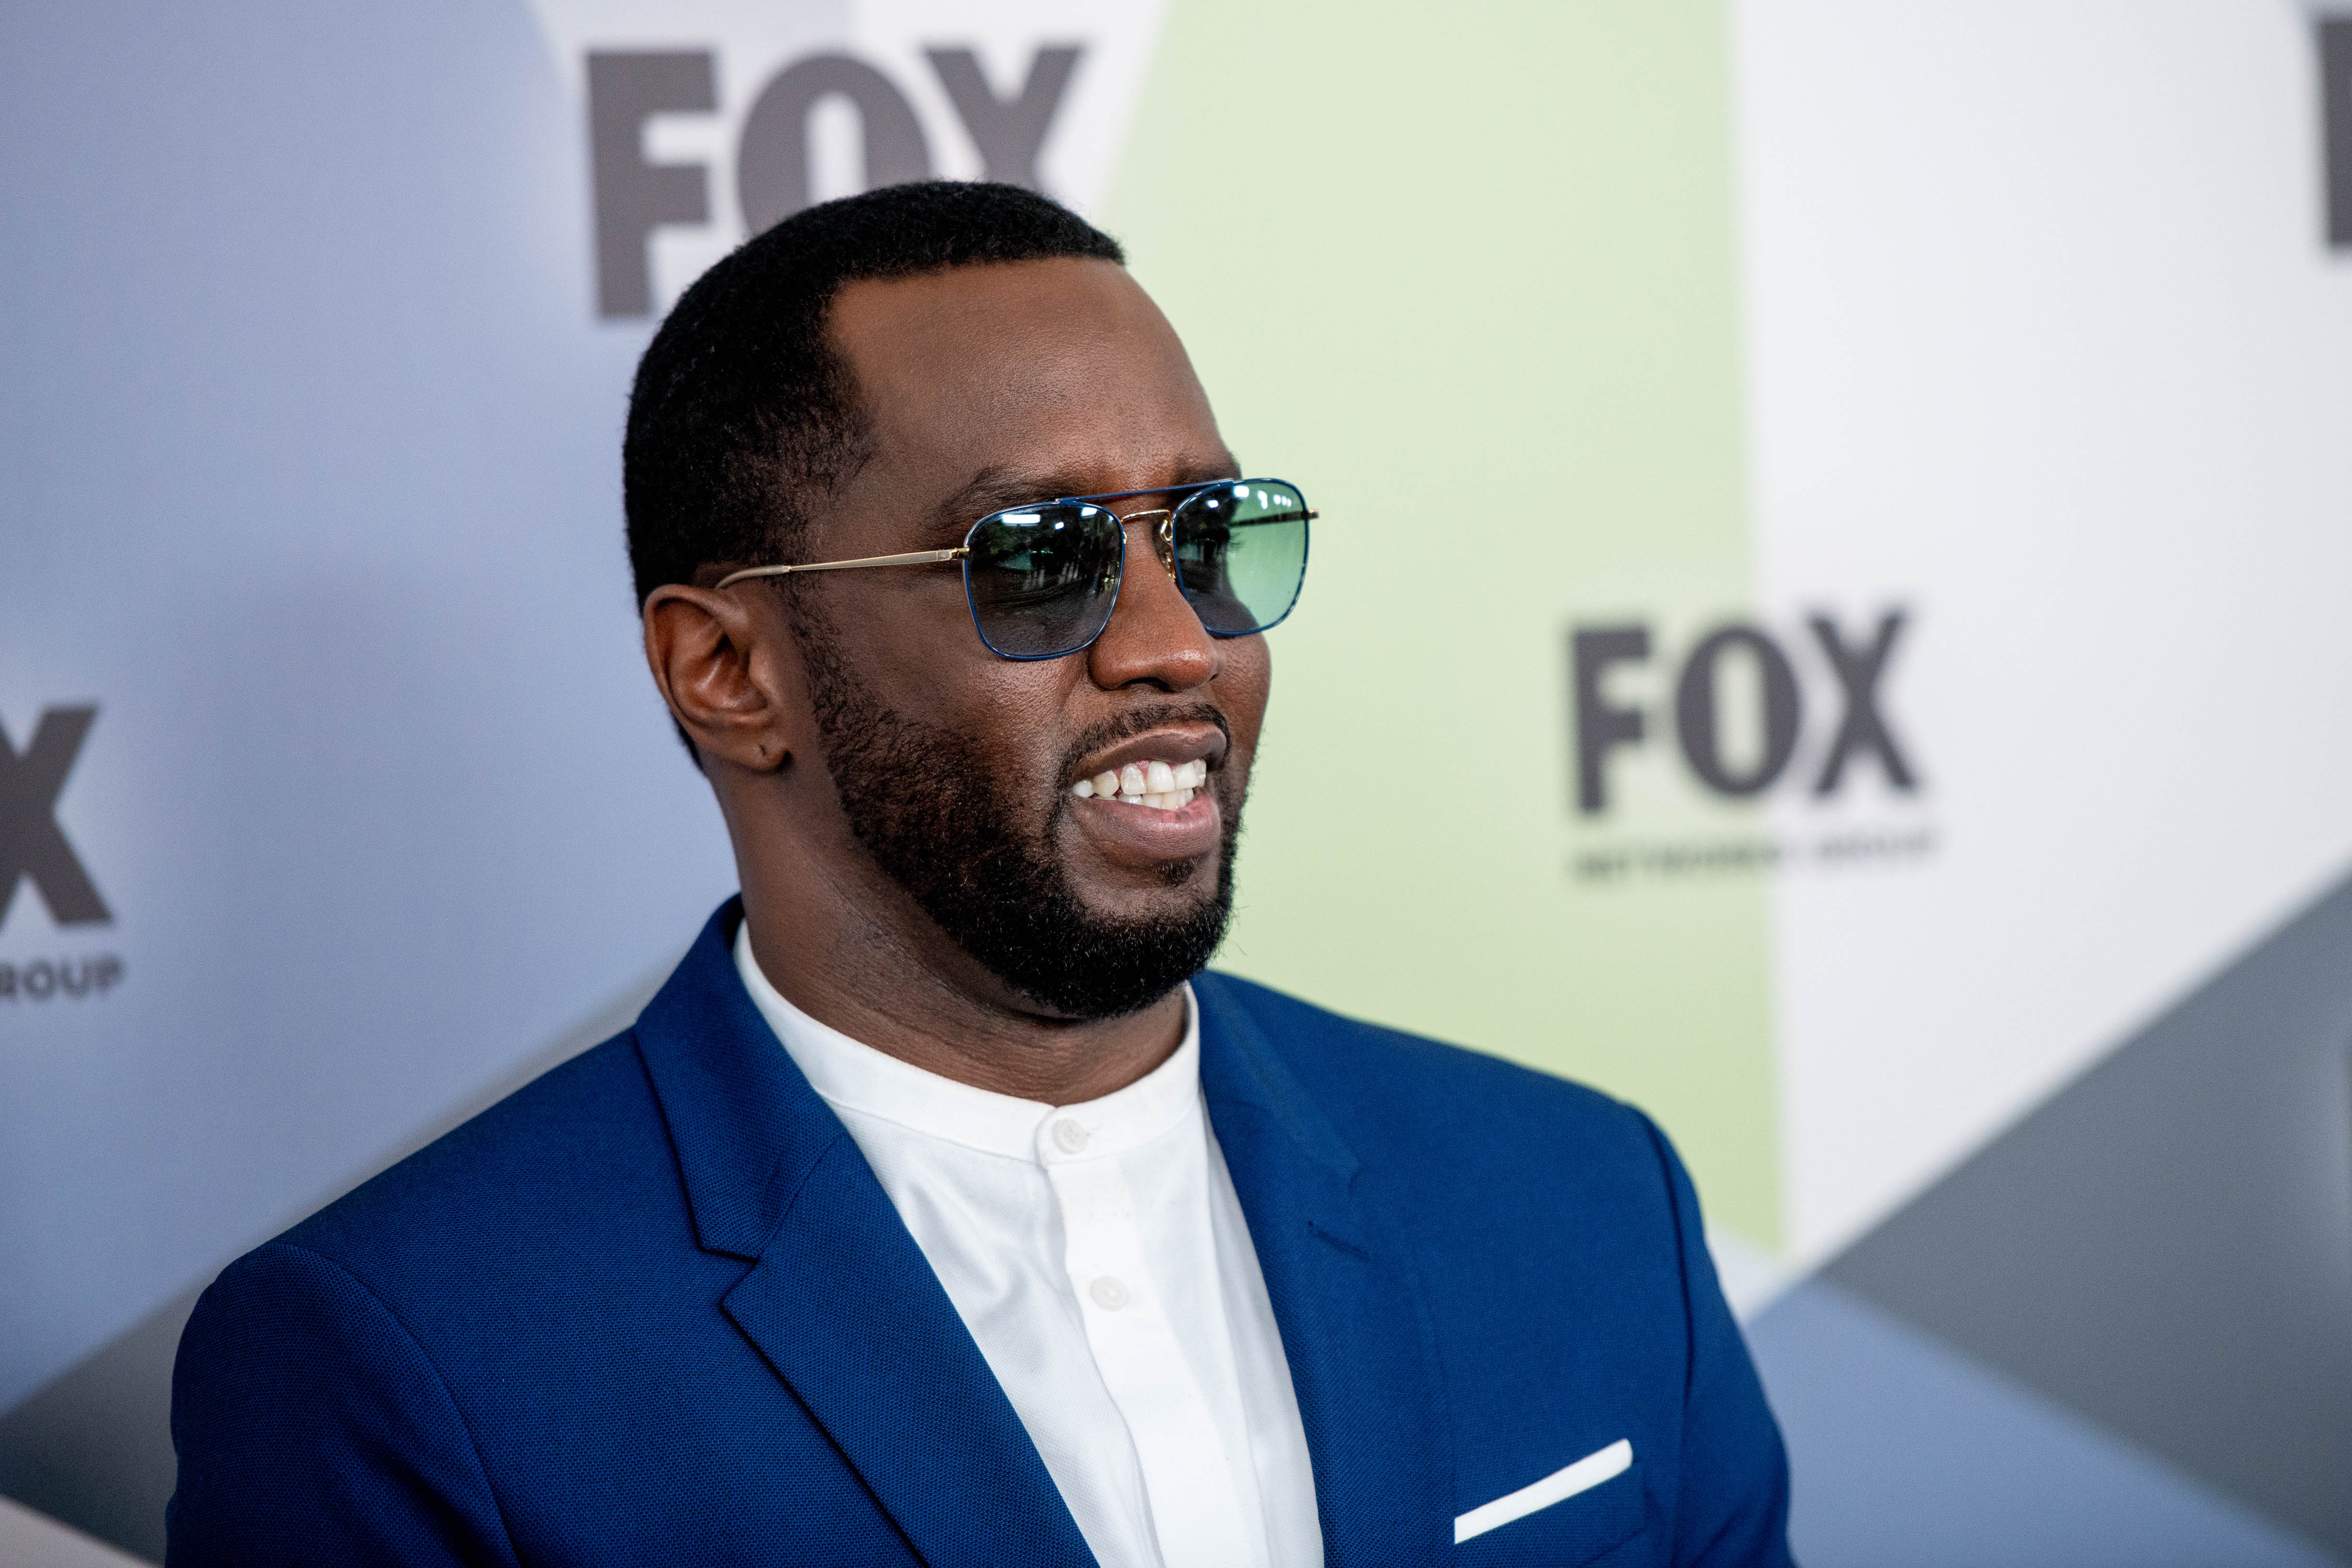 """Sean """"Diddy"""" Combs at the 2018 Fox Network Upfront at Wollman Rink, Central Park on May 14, 2018 in New York City.   Source: Getty Images"""